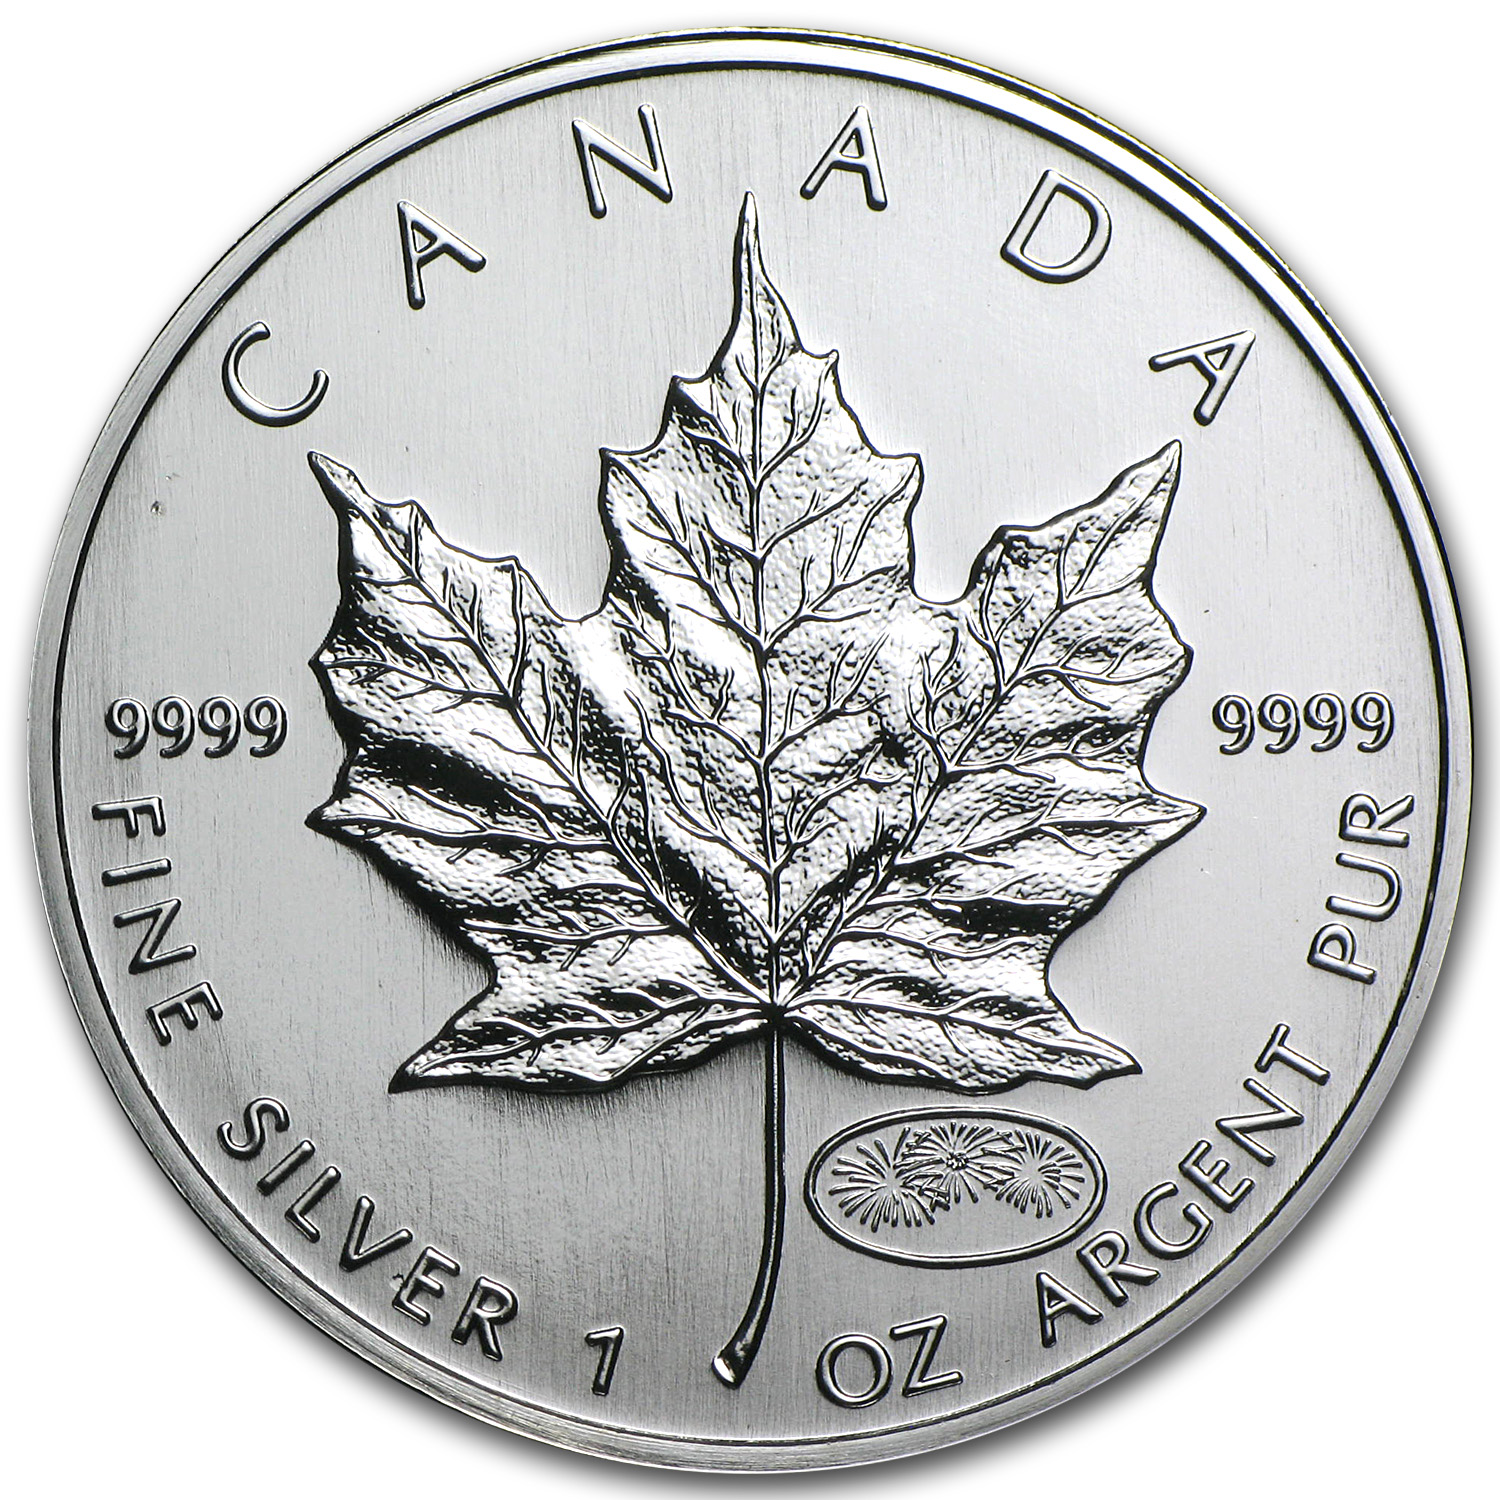 1999/2000 Canada 1 oz Silver Maple Leaf Millennium Privy